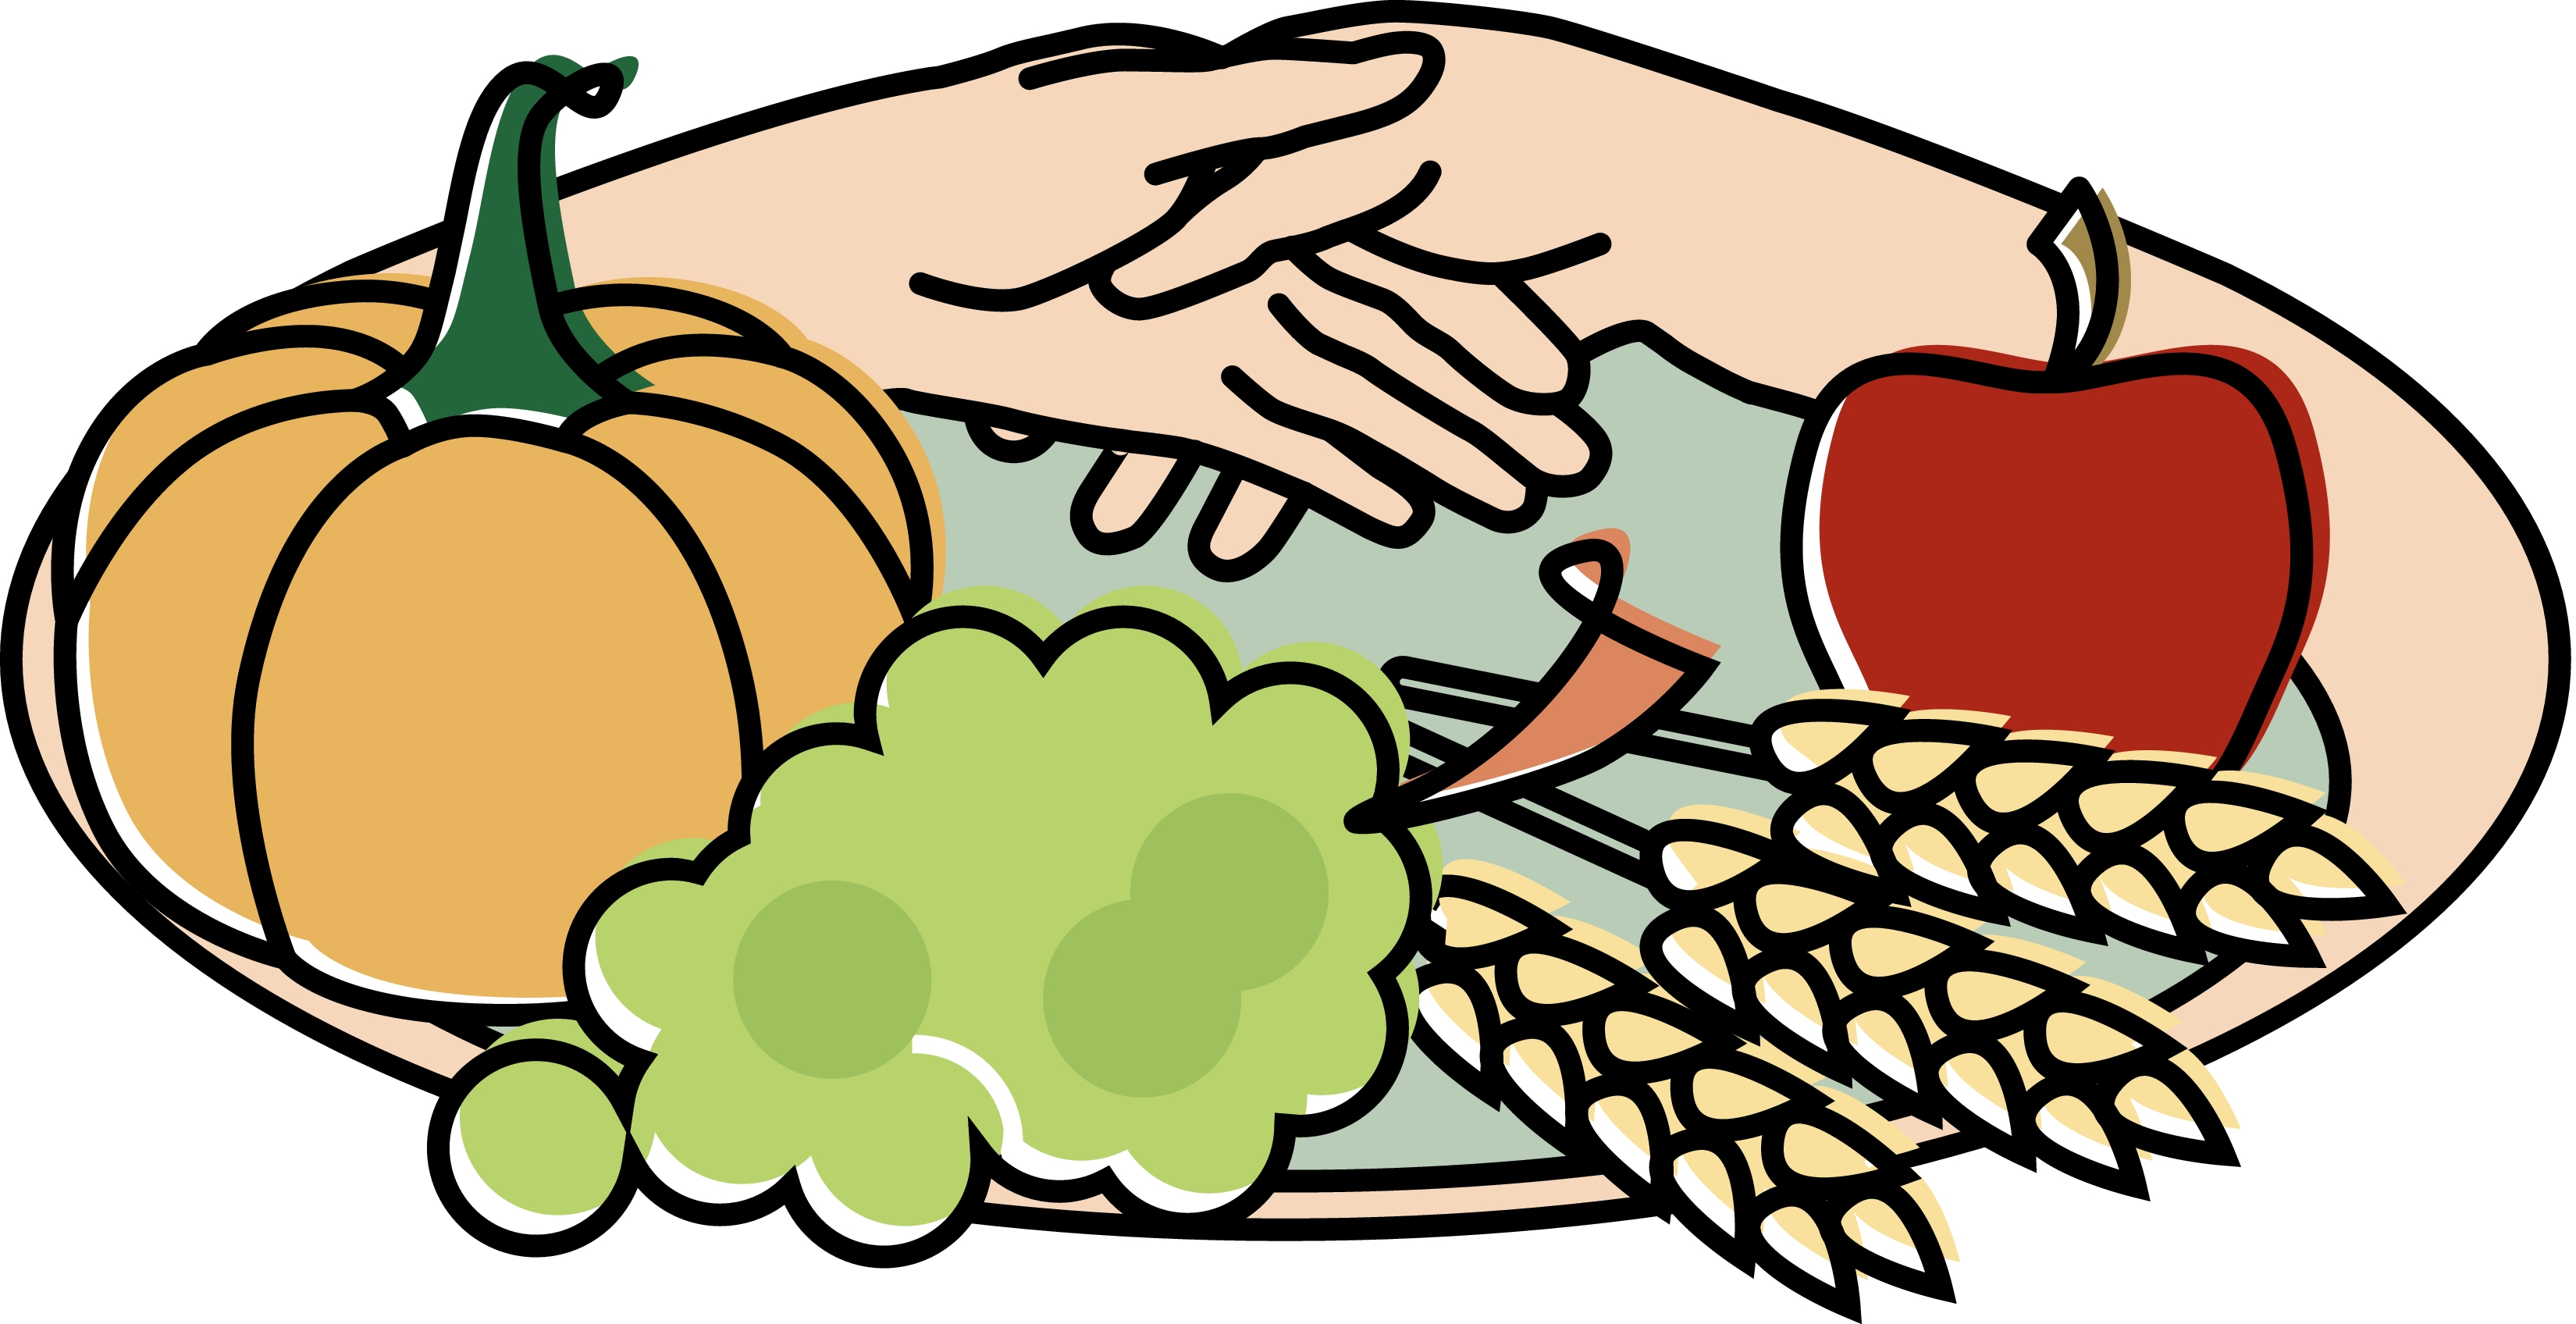 Free fellowship meal cliparts. Luncheon clipart community